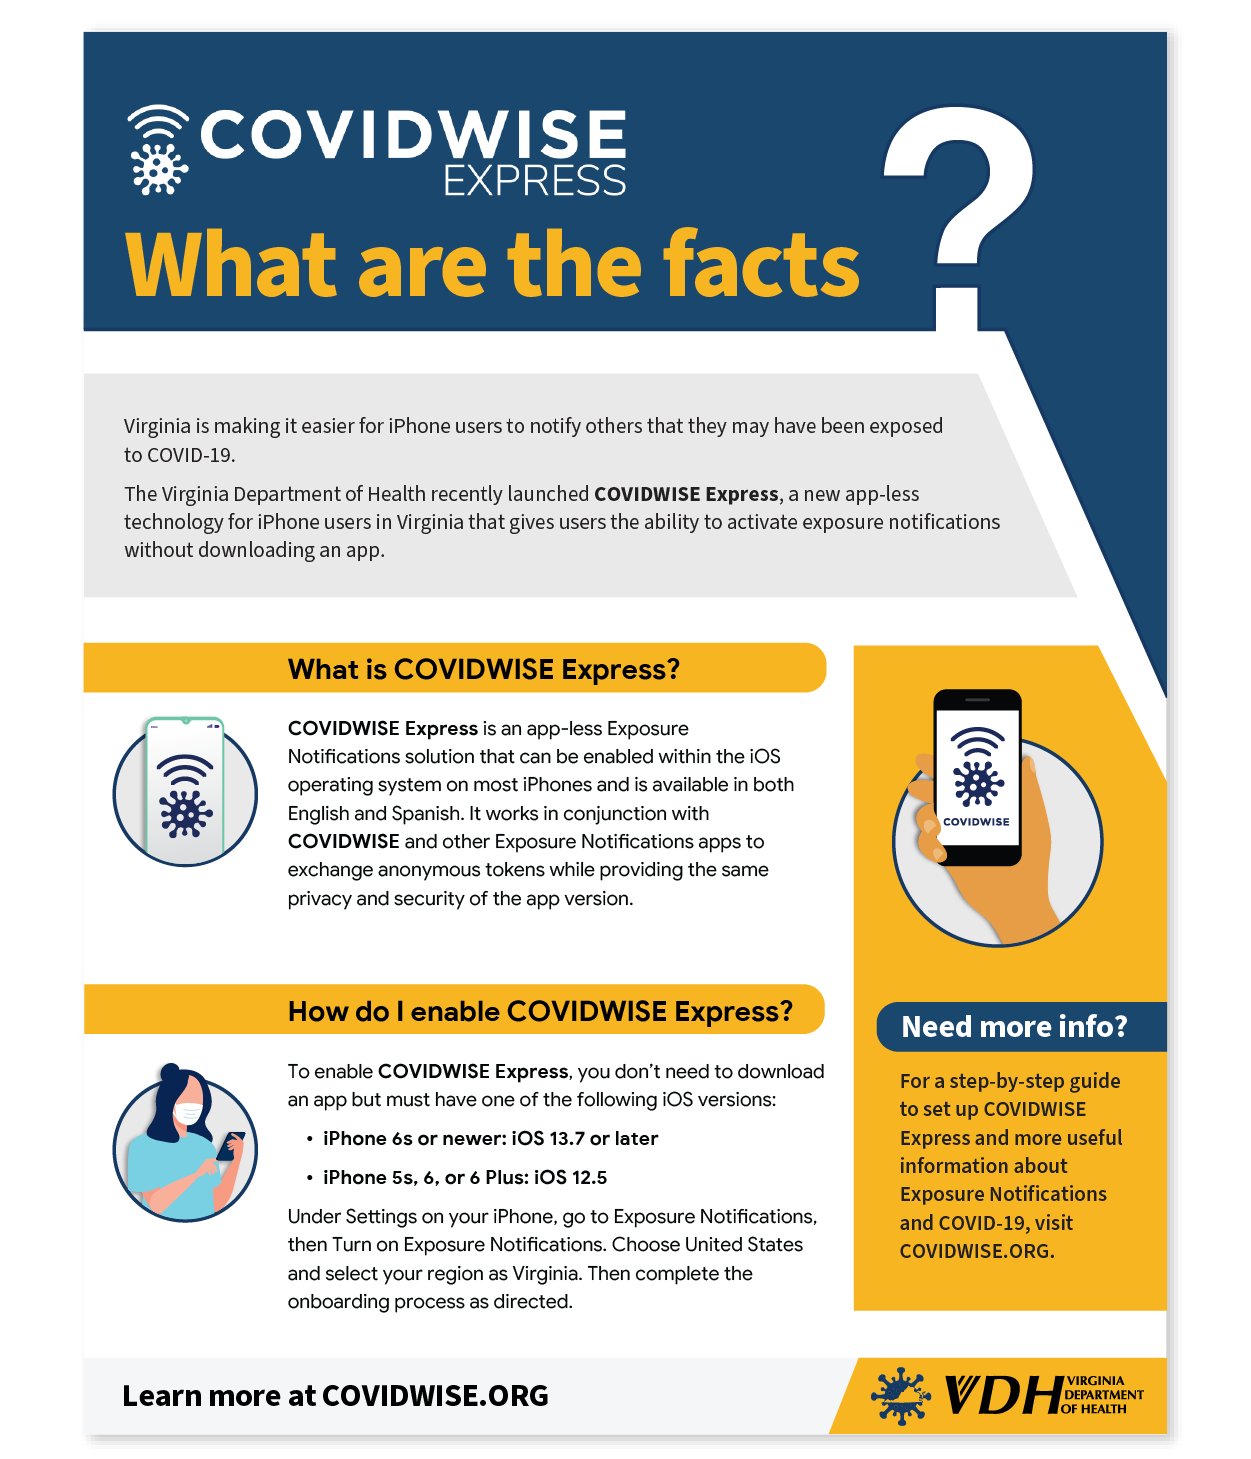 COVIDWISE Express Fact Sheet